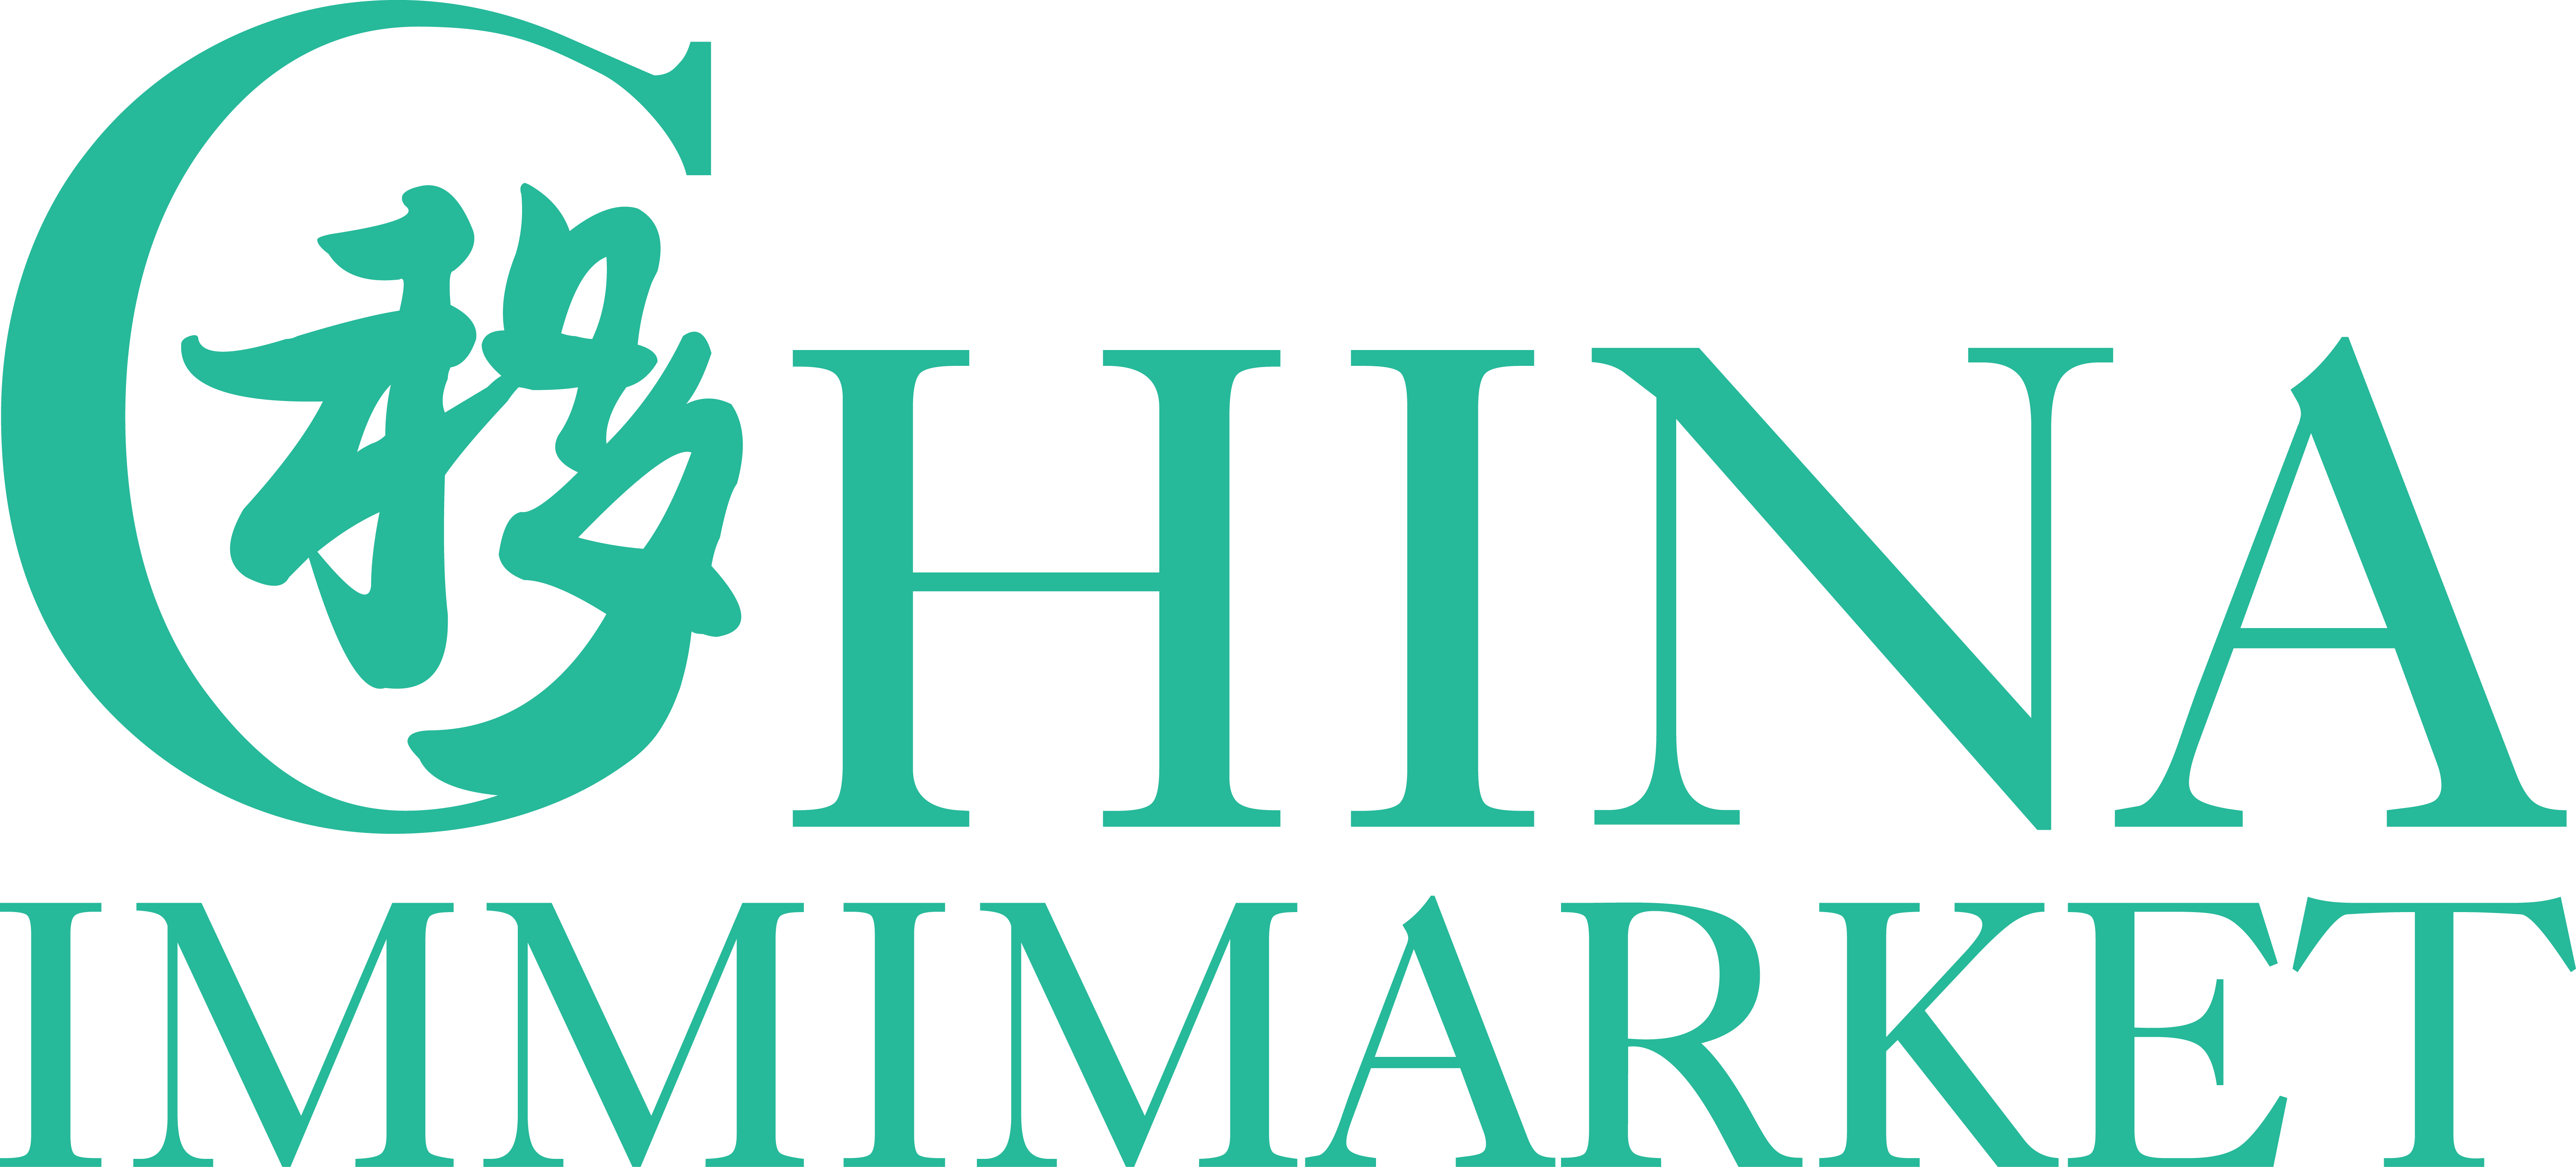 China ImmiMarket | Leading Chinese Immigration Online Media | Marketing Consulting Firm | Bilingual Immigration Marketing Experts